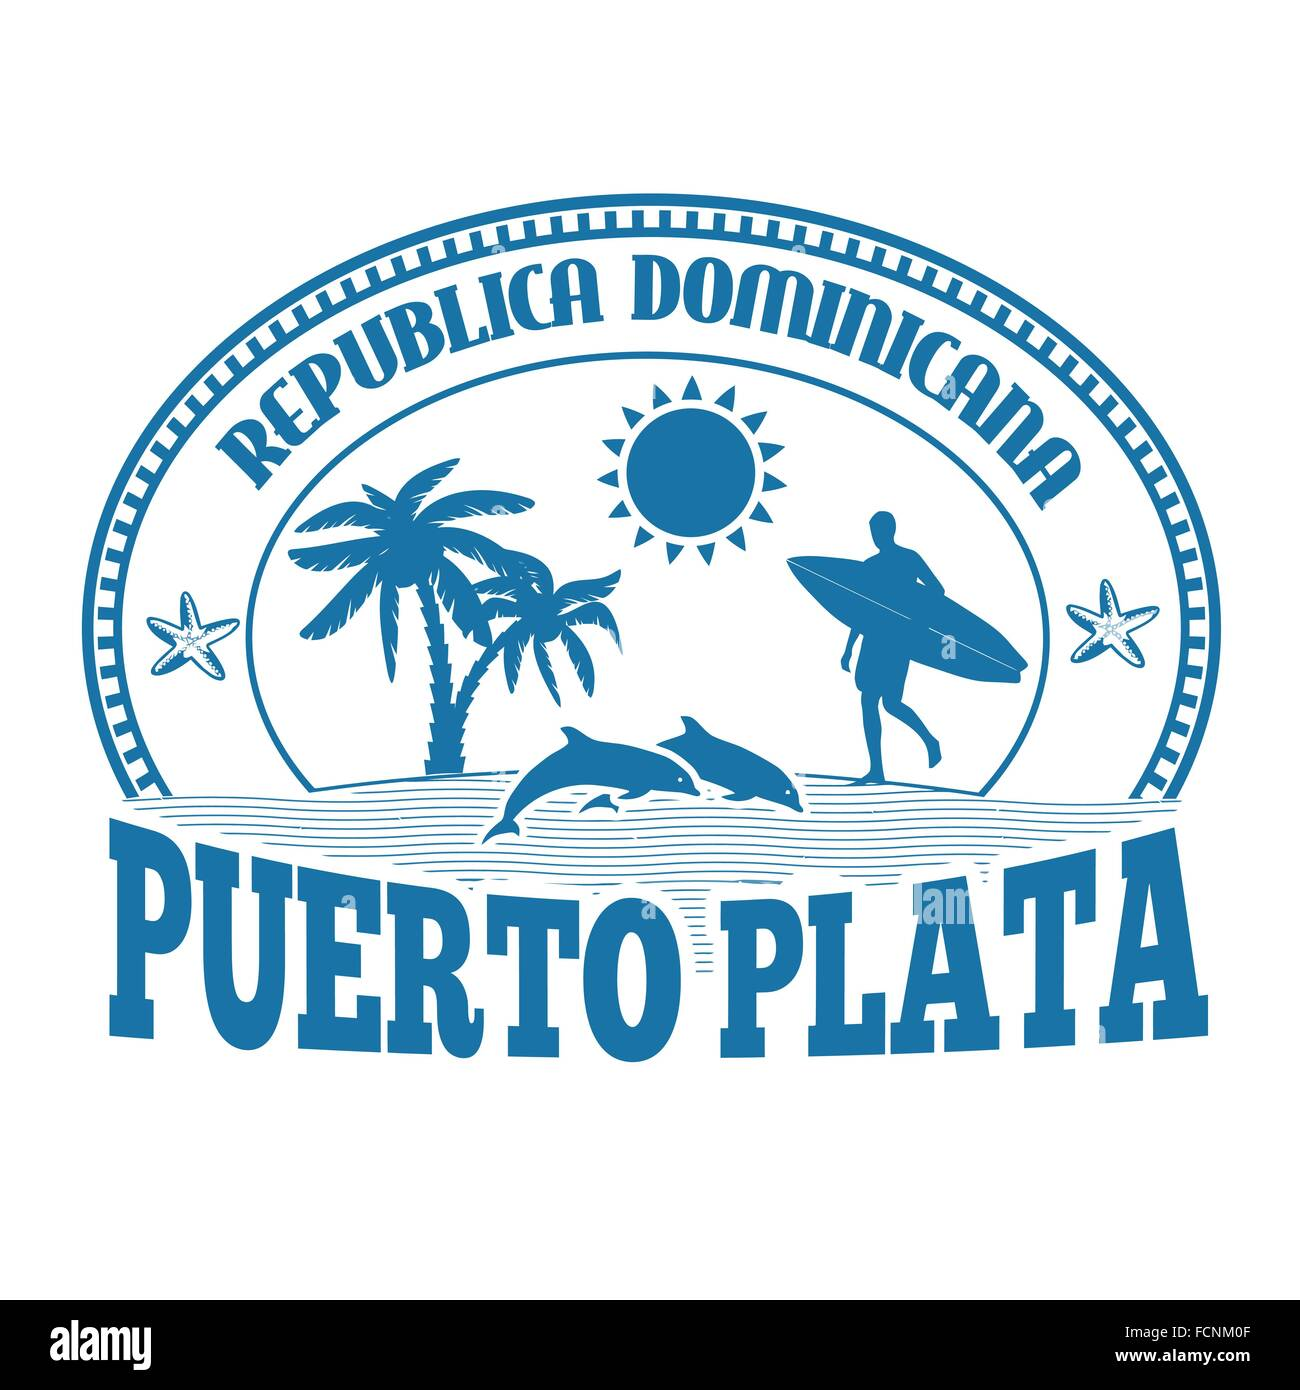 Puerto Plata, Dominican Republic, stamp or label on white background, vector illustration Stock Vector